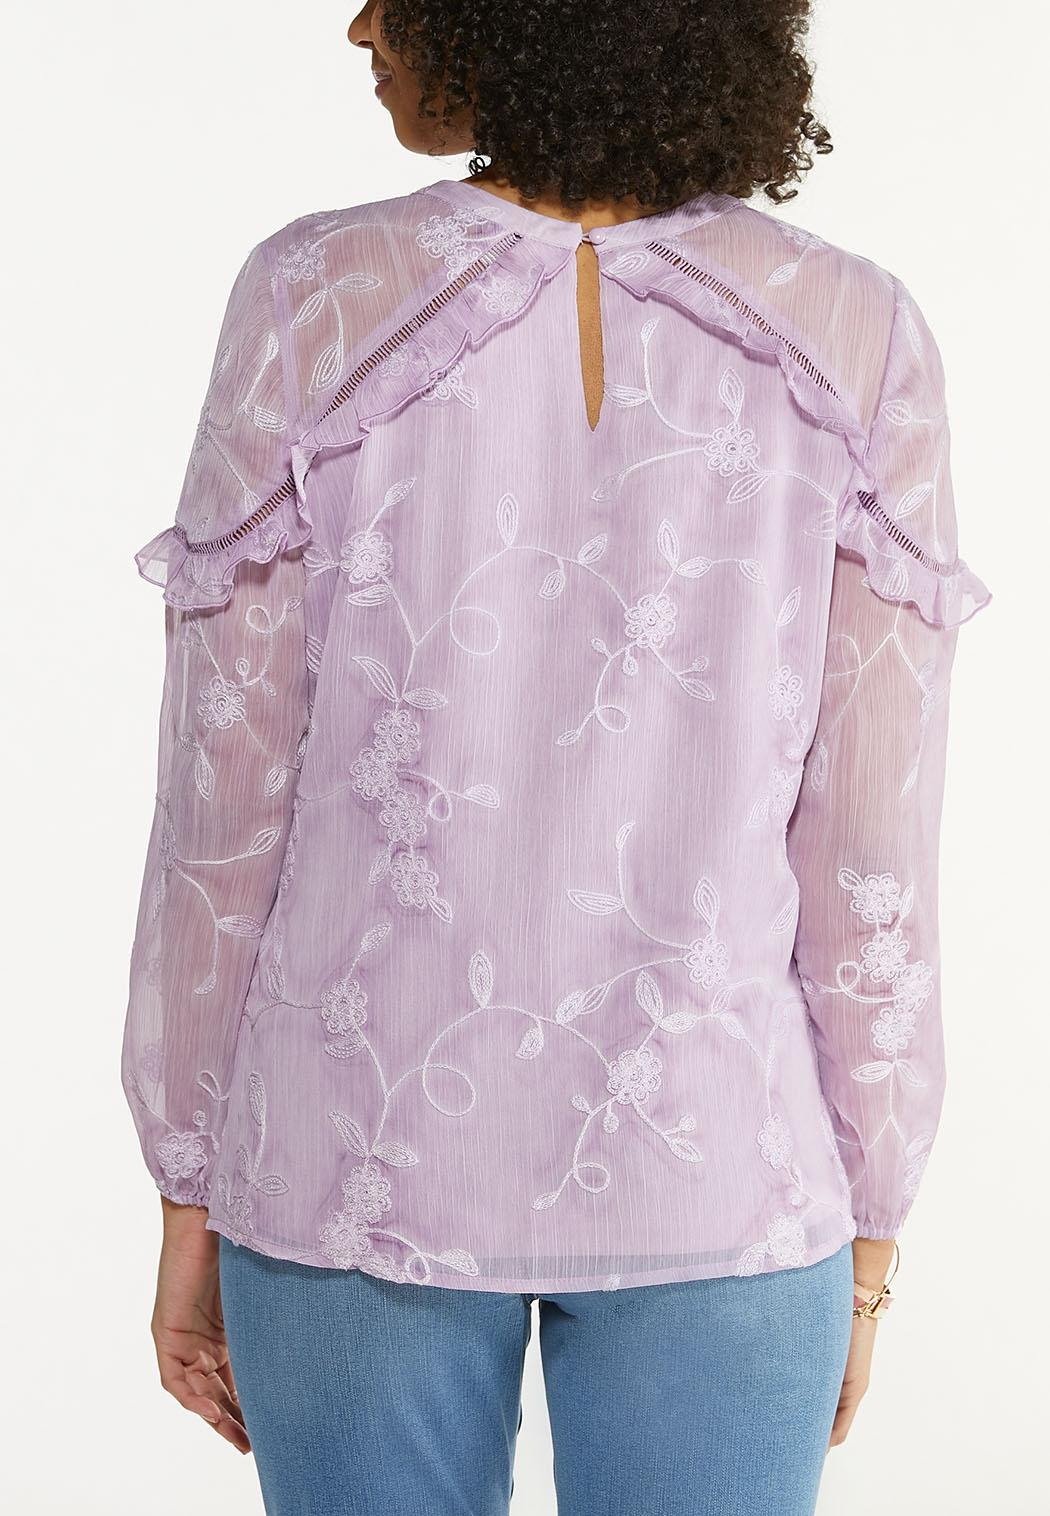 Ruffled Embroidered Top (Item #44531604)